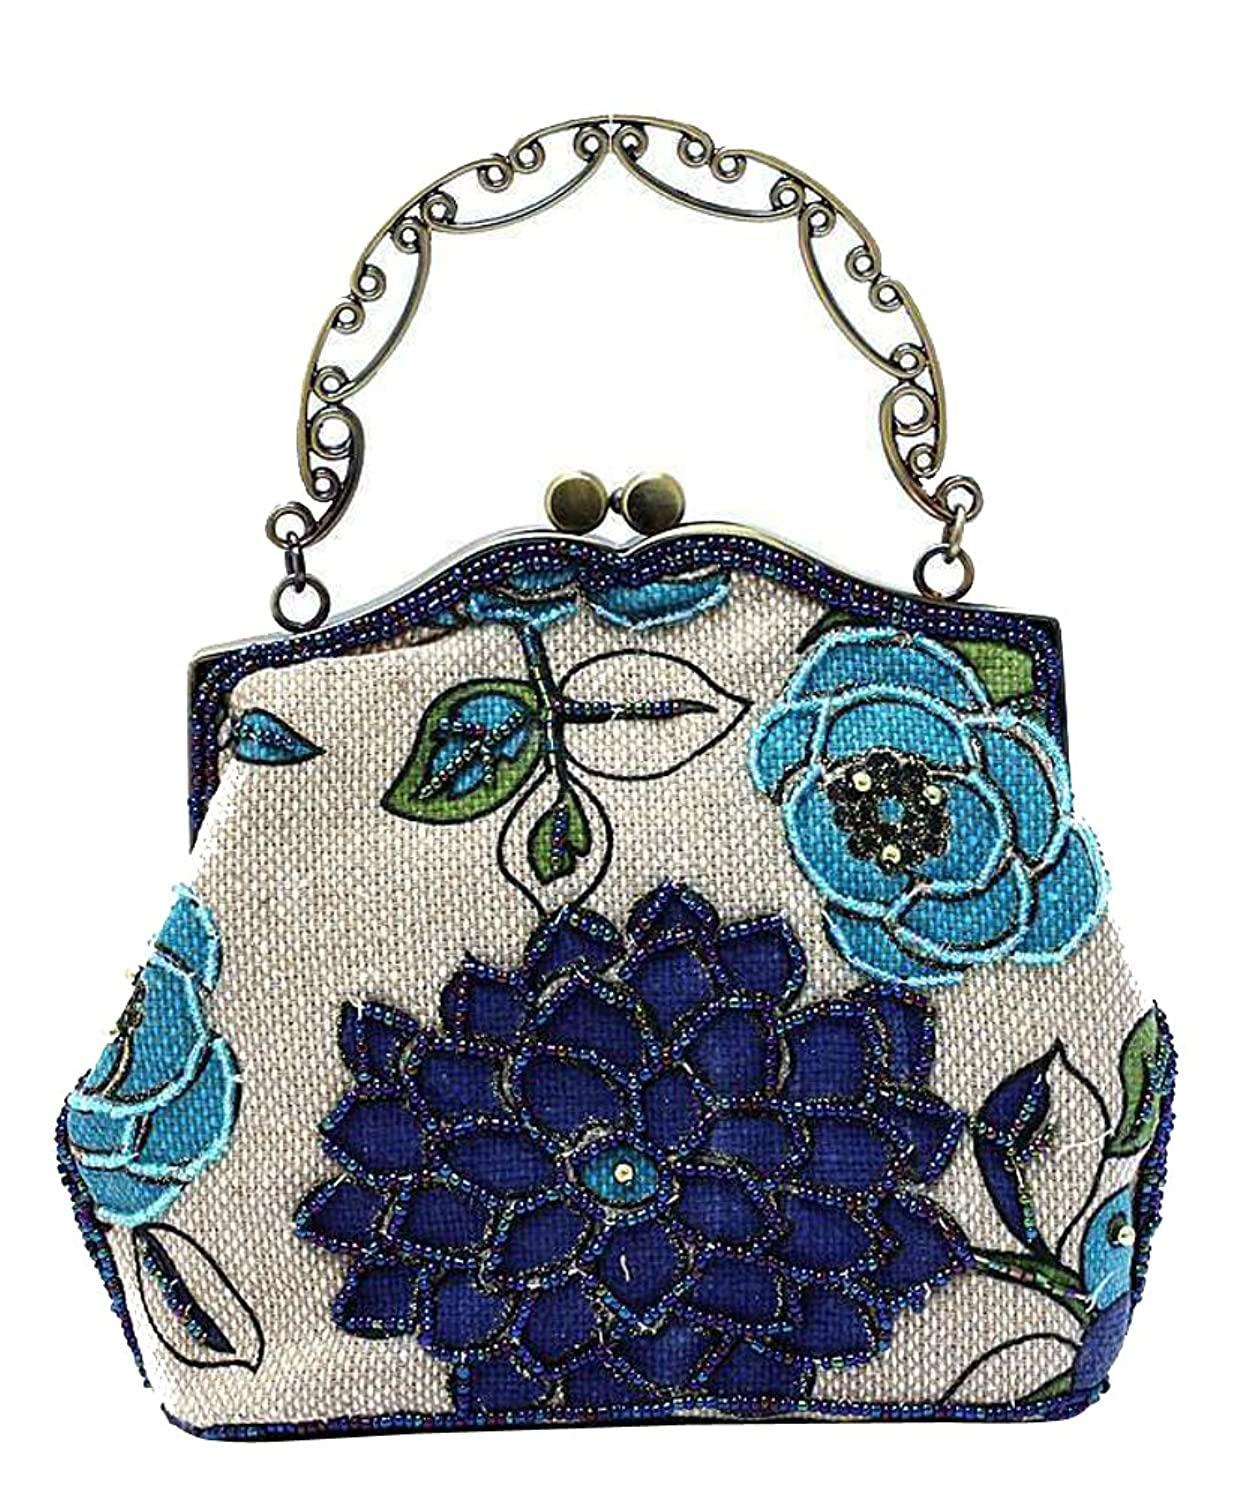 1920s Accessories | Great Gatsby Accessories Guide ILISHOP Womens Vintage Luxury Printing Beaded Women Handbag Evening Bag $19.99 AT vintagedancer.com